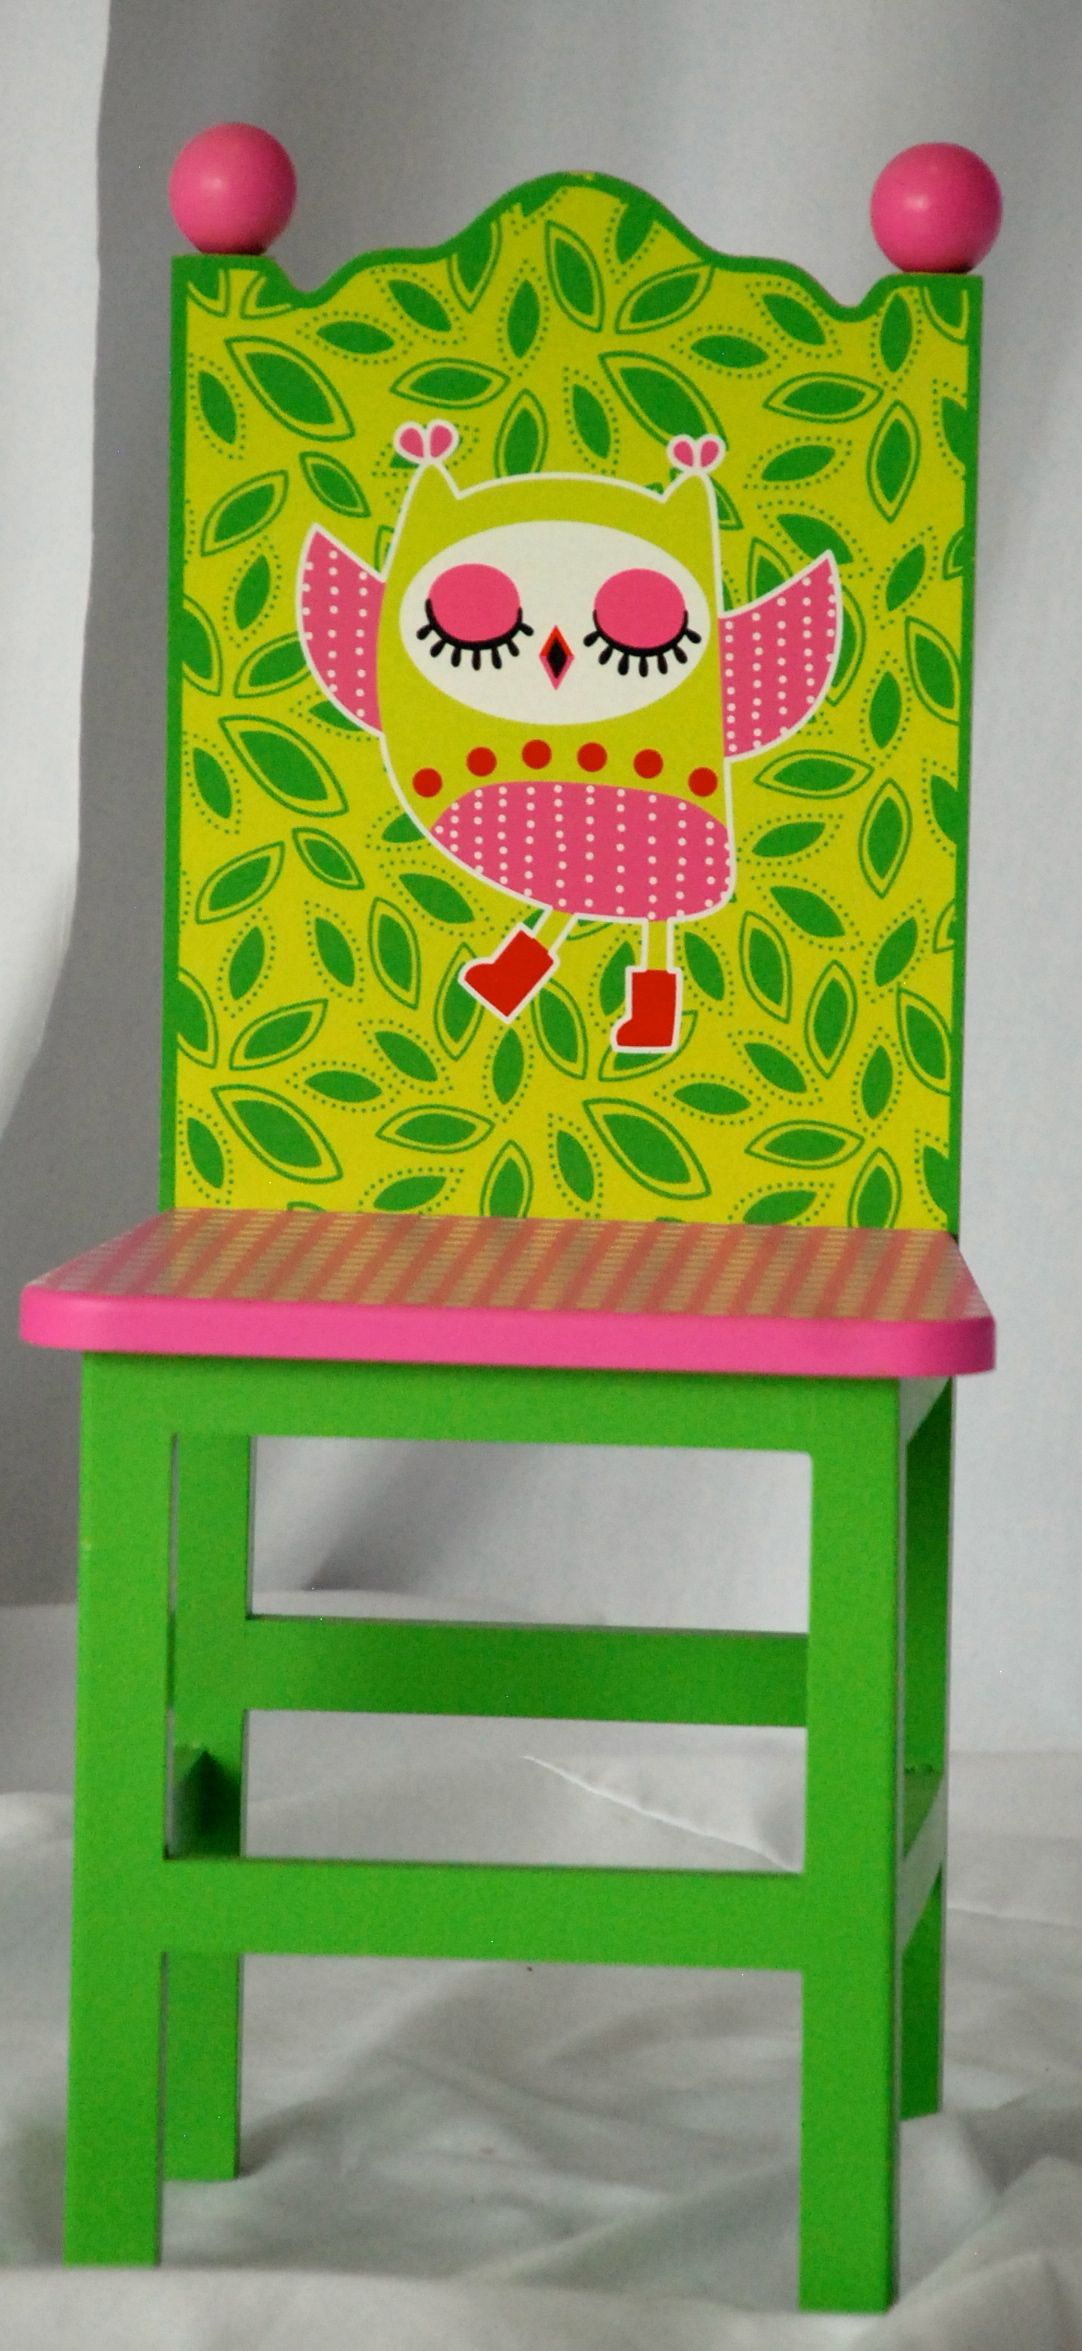 Owl Chair For Kids Jens Risom Child Green With Pink Painted Chairs